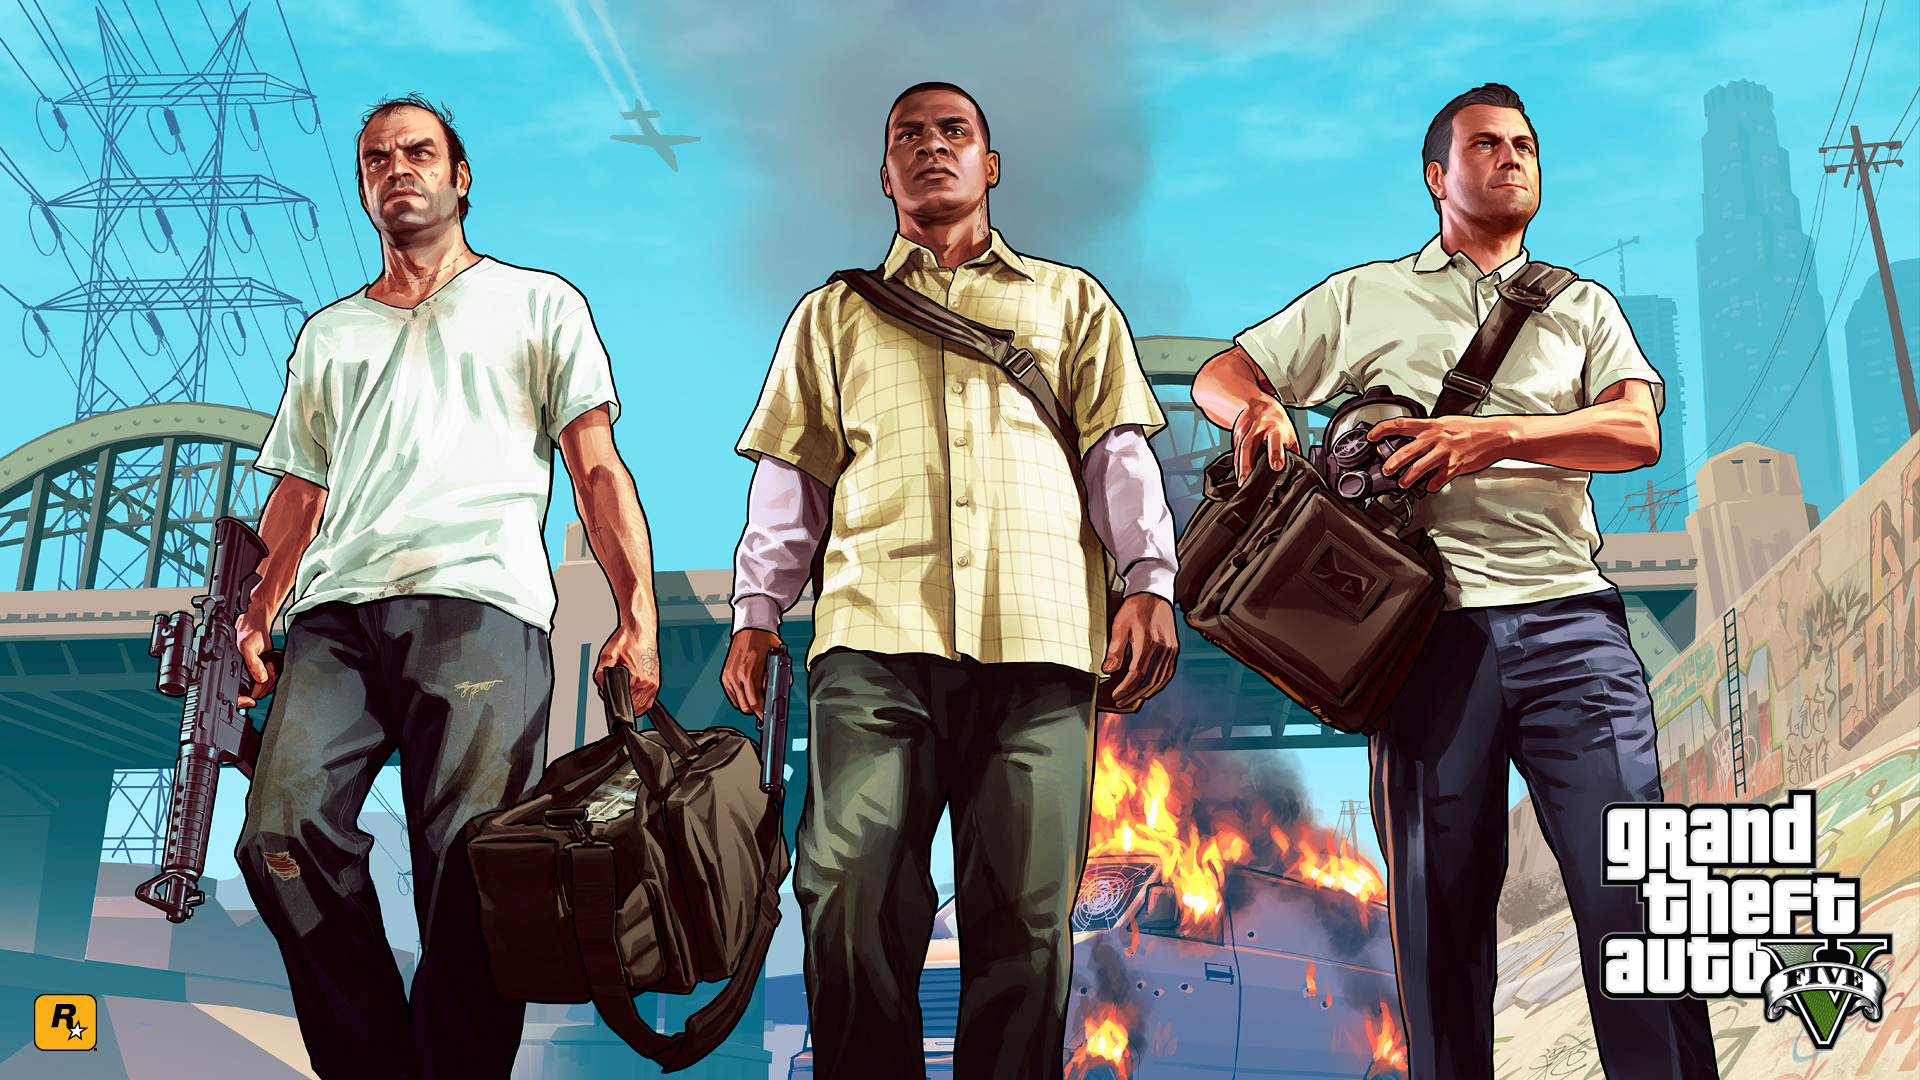 grand theft auto IV hd wallpaper wallpapers55com   Best Wallpapers 1920x1080